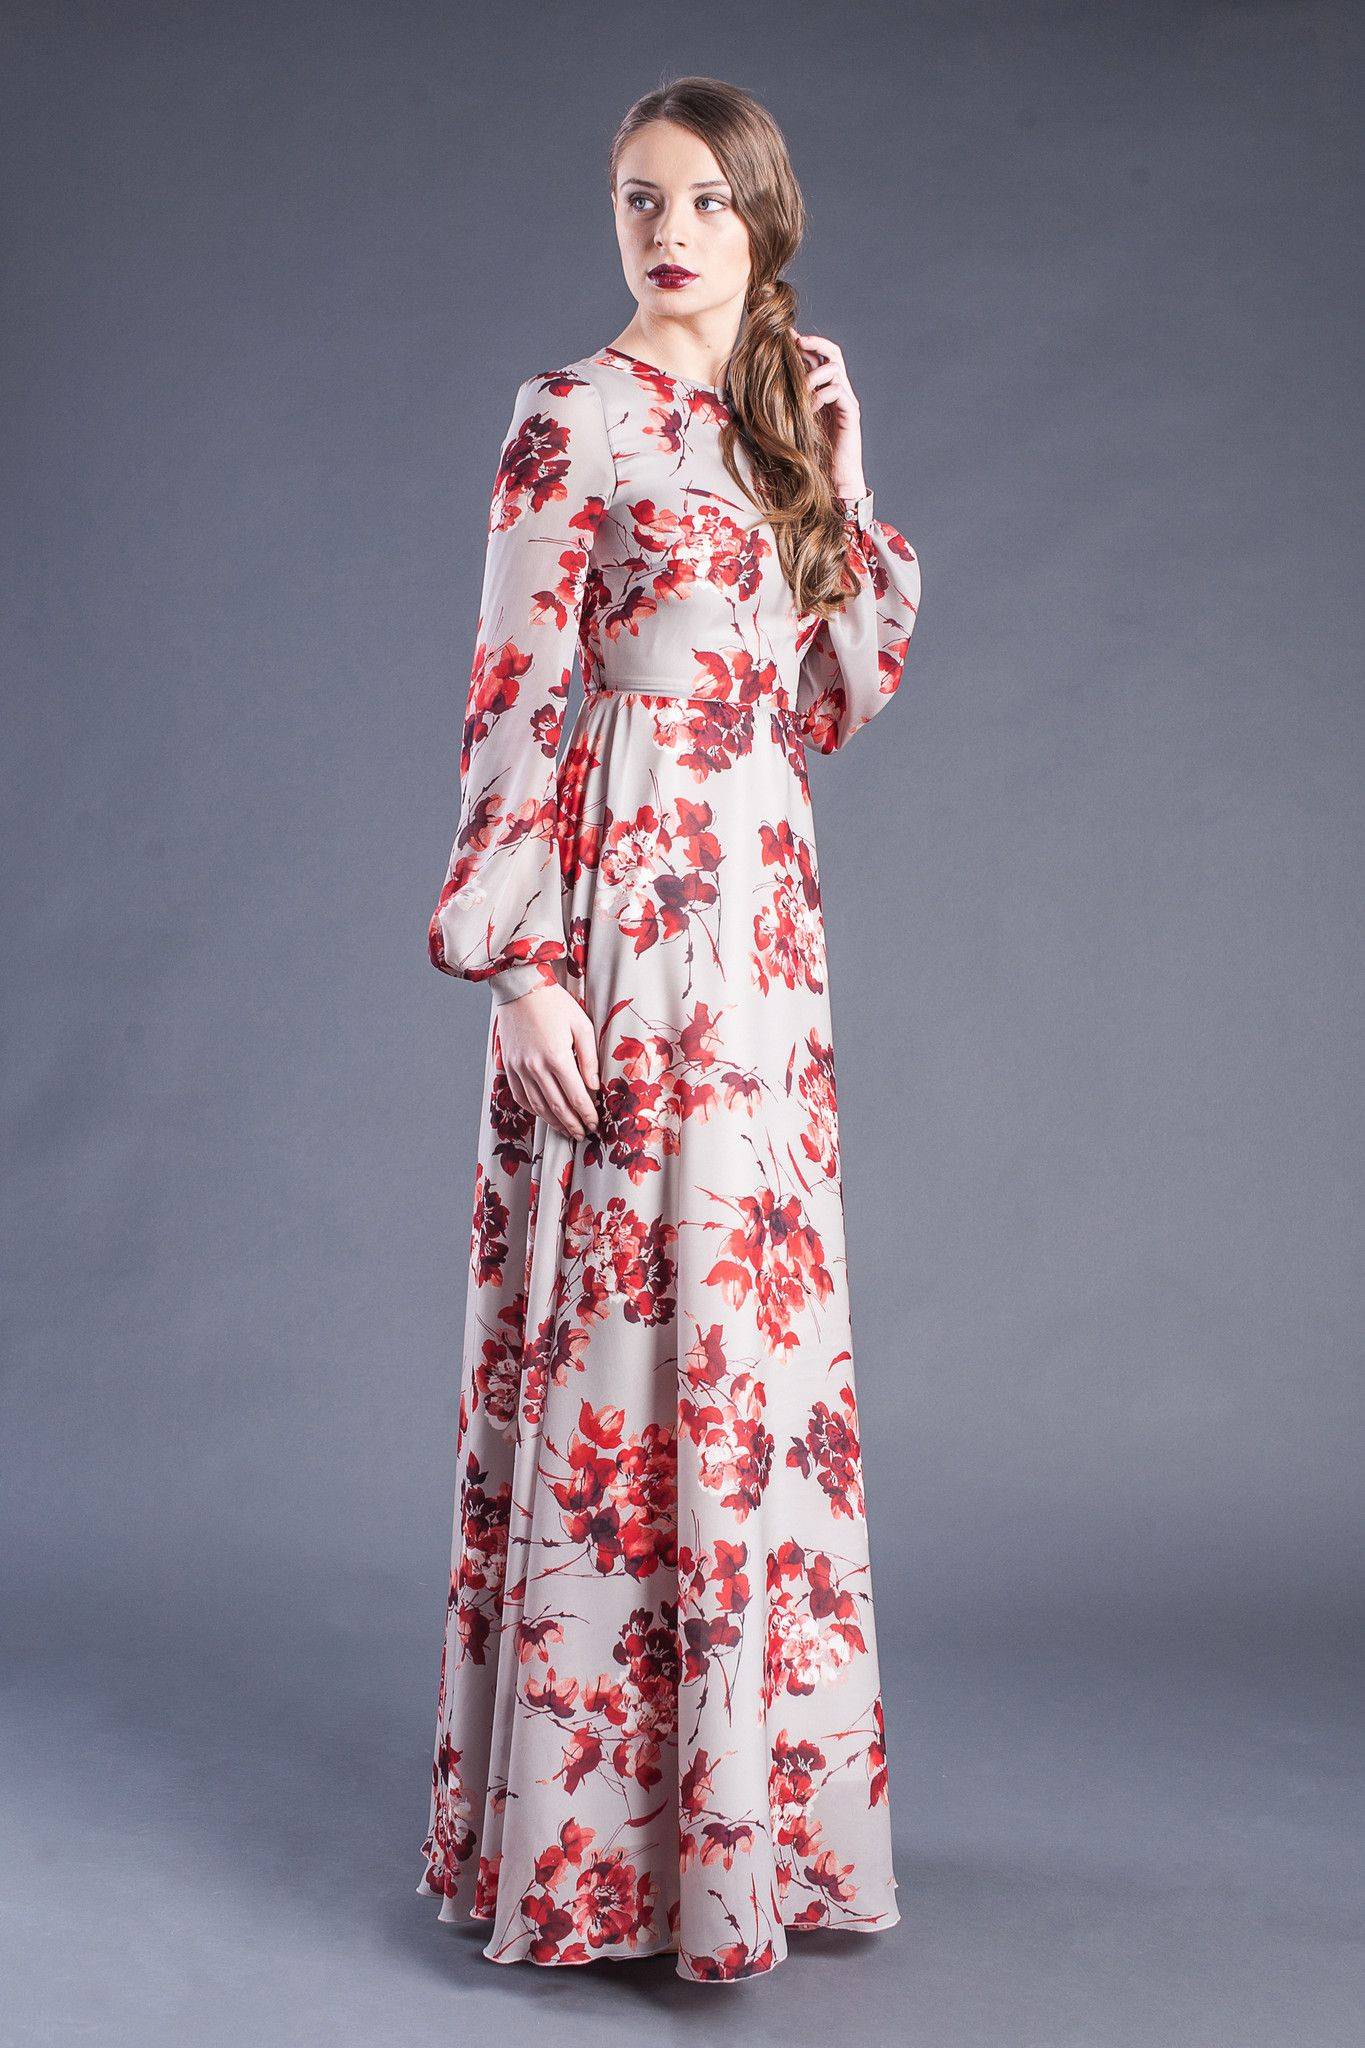 Women's dresses come in both relaxed and tight fits this season. Discover flowy kimono and shirt style dresses. Get inspired with the latest collection of dresses from ZARA WOMAN online. LONG FLORAL PRINT DRESS. FLORAL PRINT DRESS WITH TIES. LINEN DRESS WITH BUTTONS. LONG CHECKERED DRESS. EMBROIDERED PATCHWORK DRESS. OFF-THE-SHOULDER DRESS.